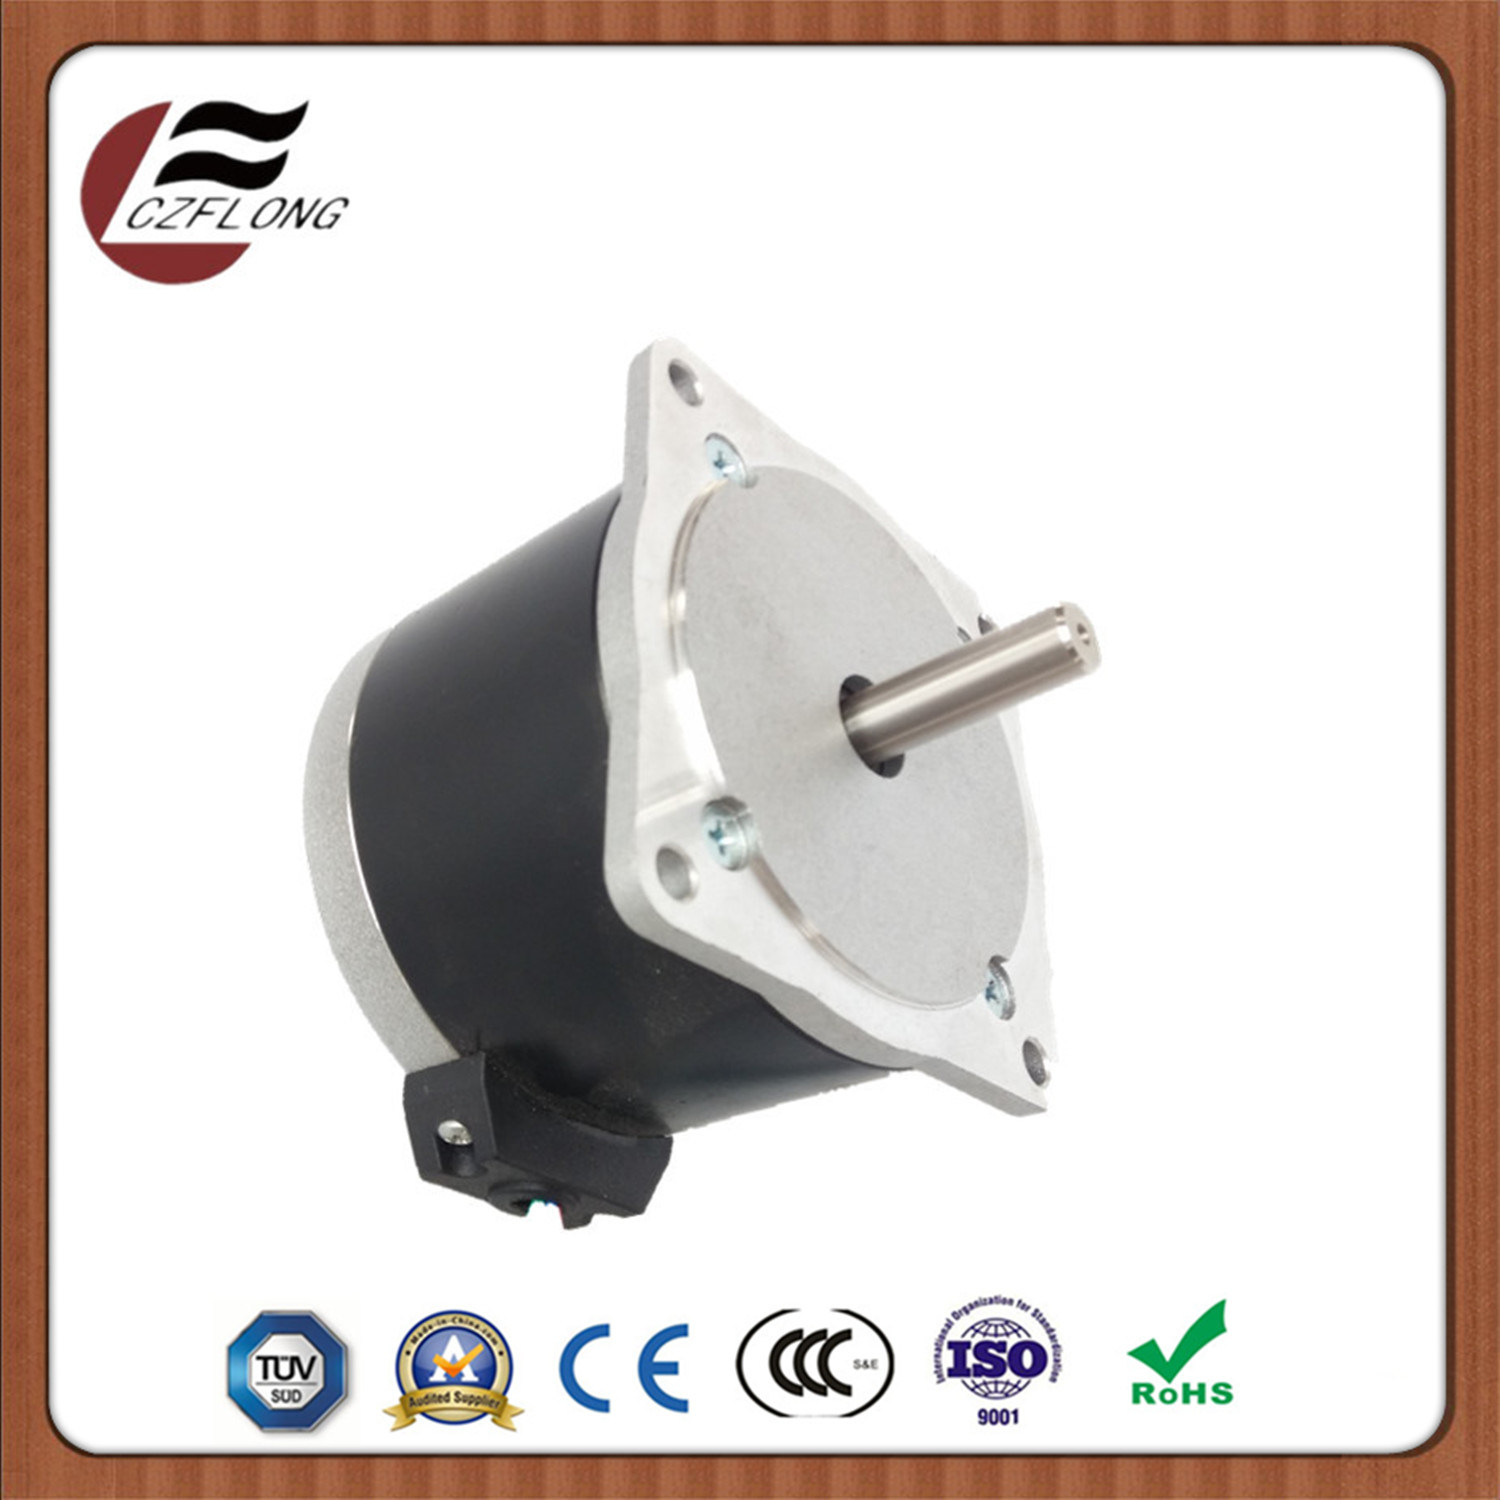 1.8-Deg NEMA34 86*86mm Stepping Motor for Embroidery Machine with Ce